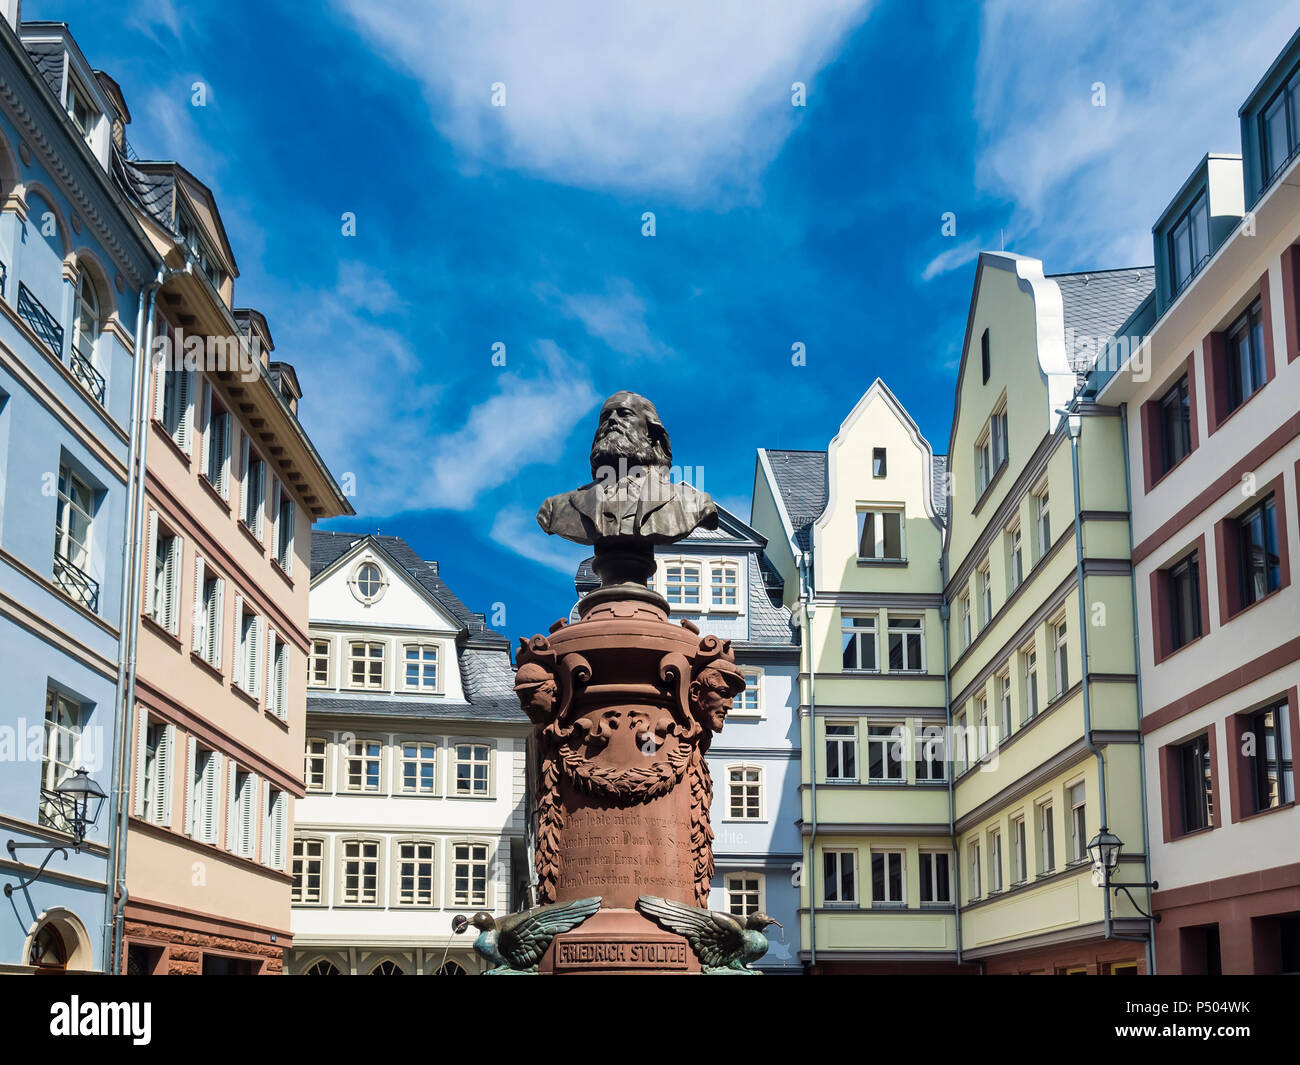 Germany, Hesse, Frankfurt, Old town, reconstructions of houses, bust of Friedrich Stoltze - Stock Image